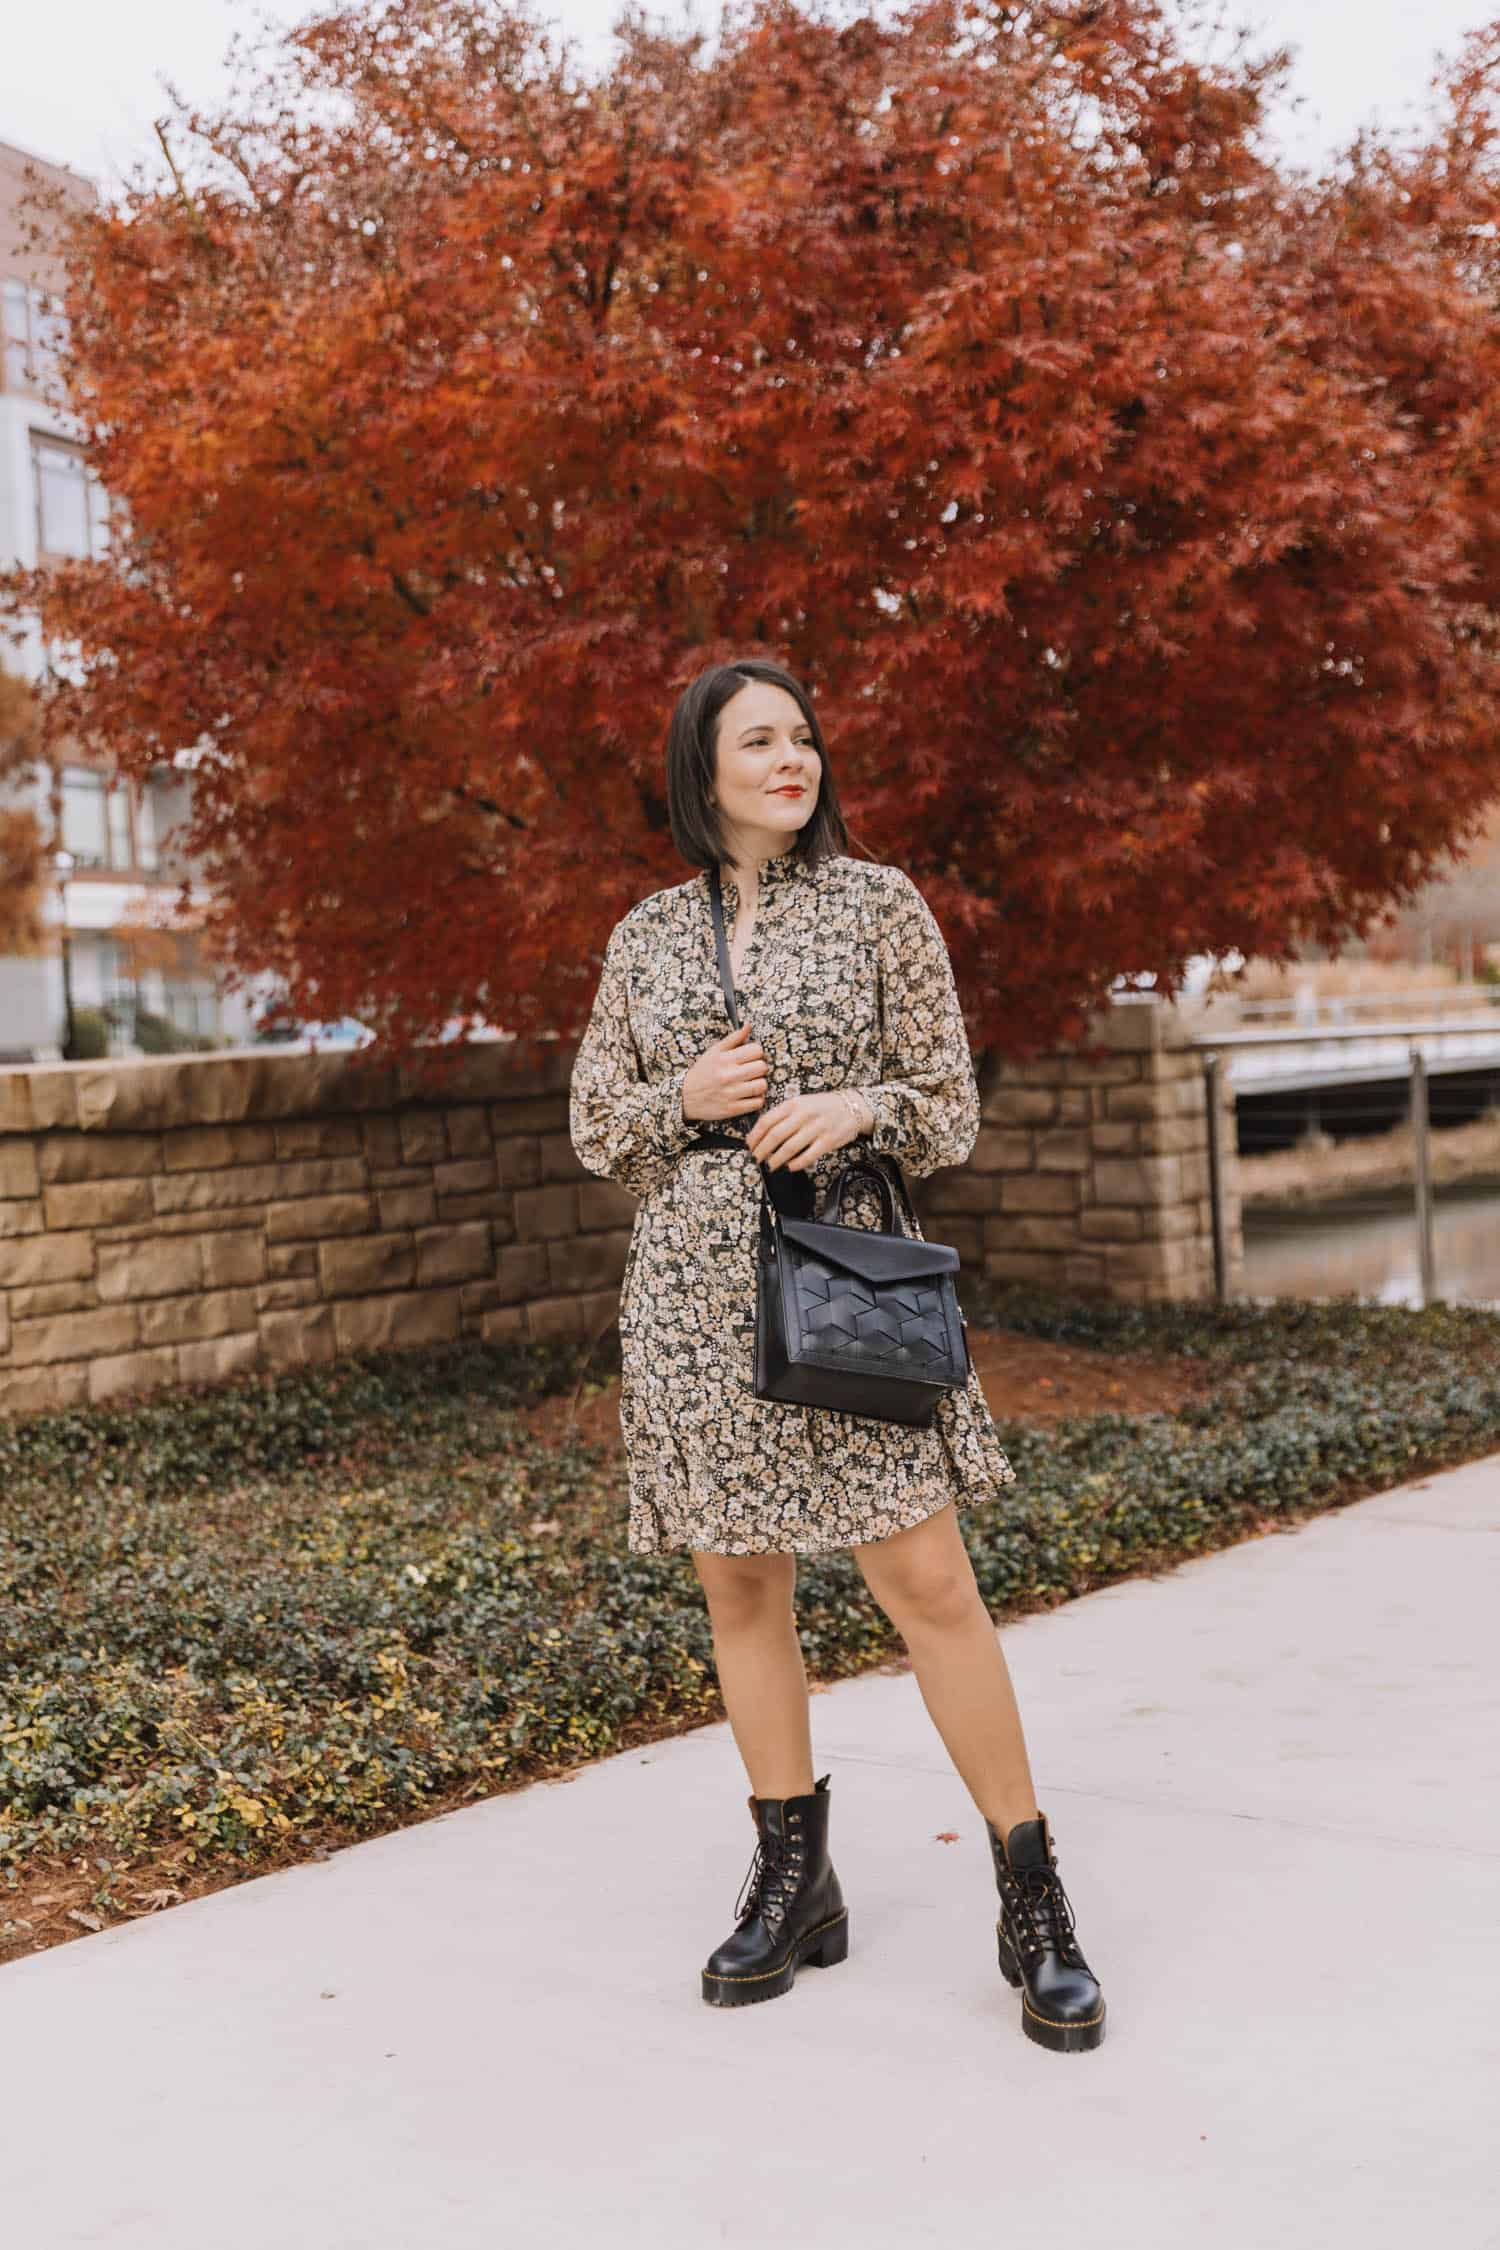 combat boots and dress outfit